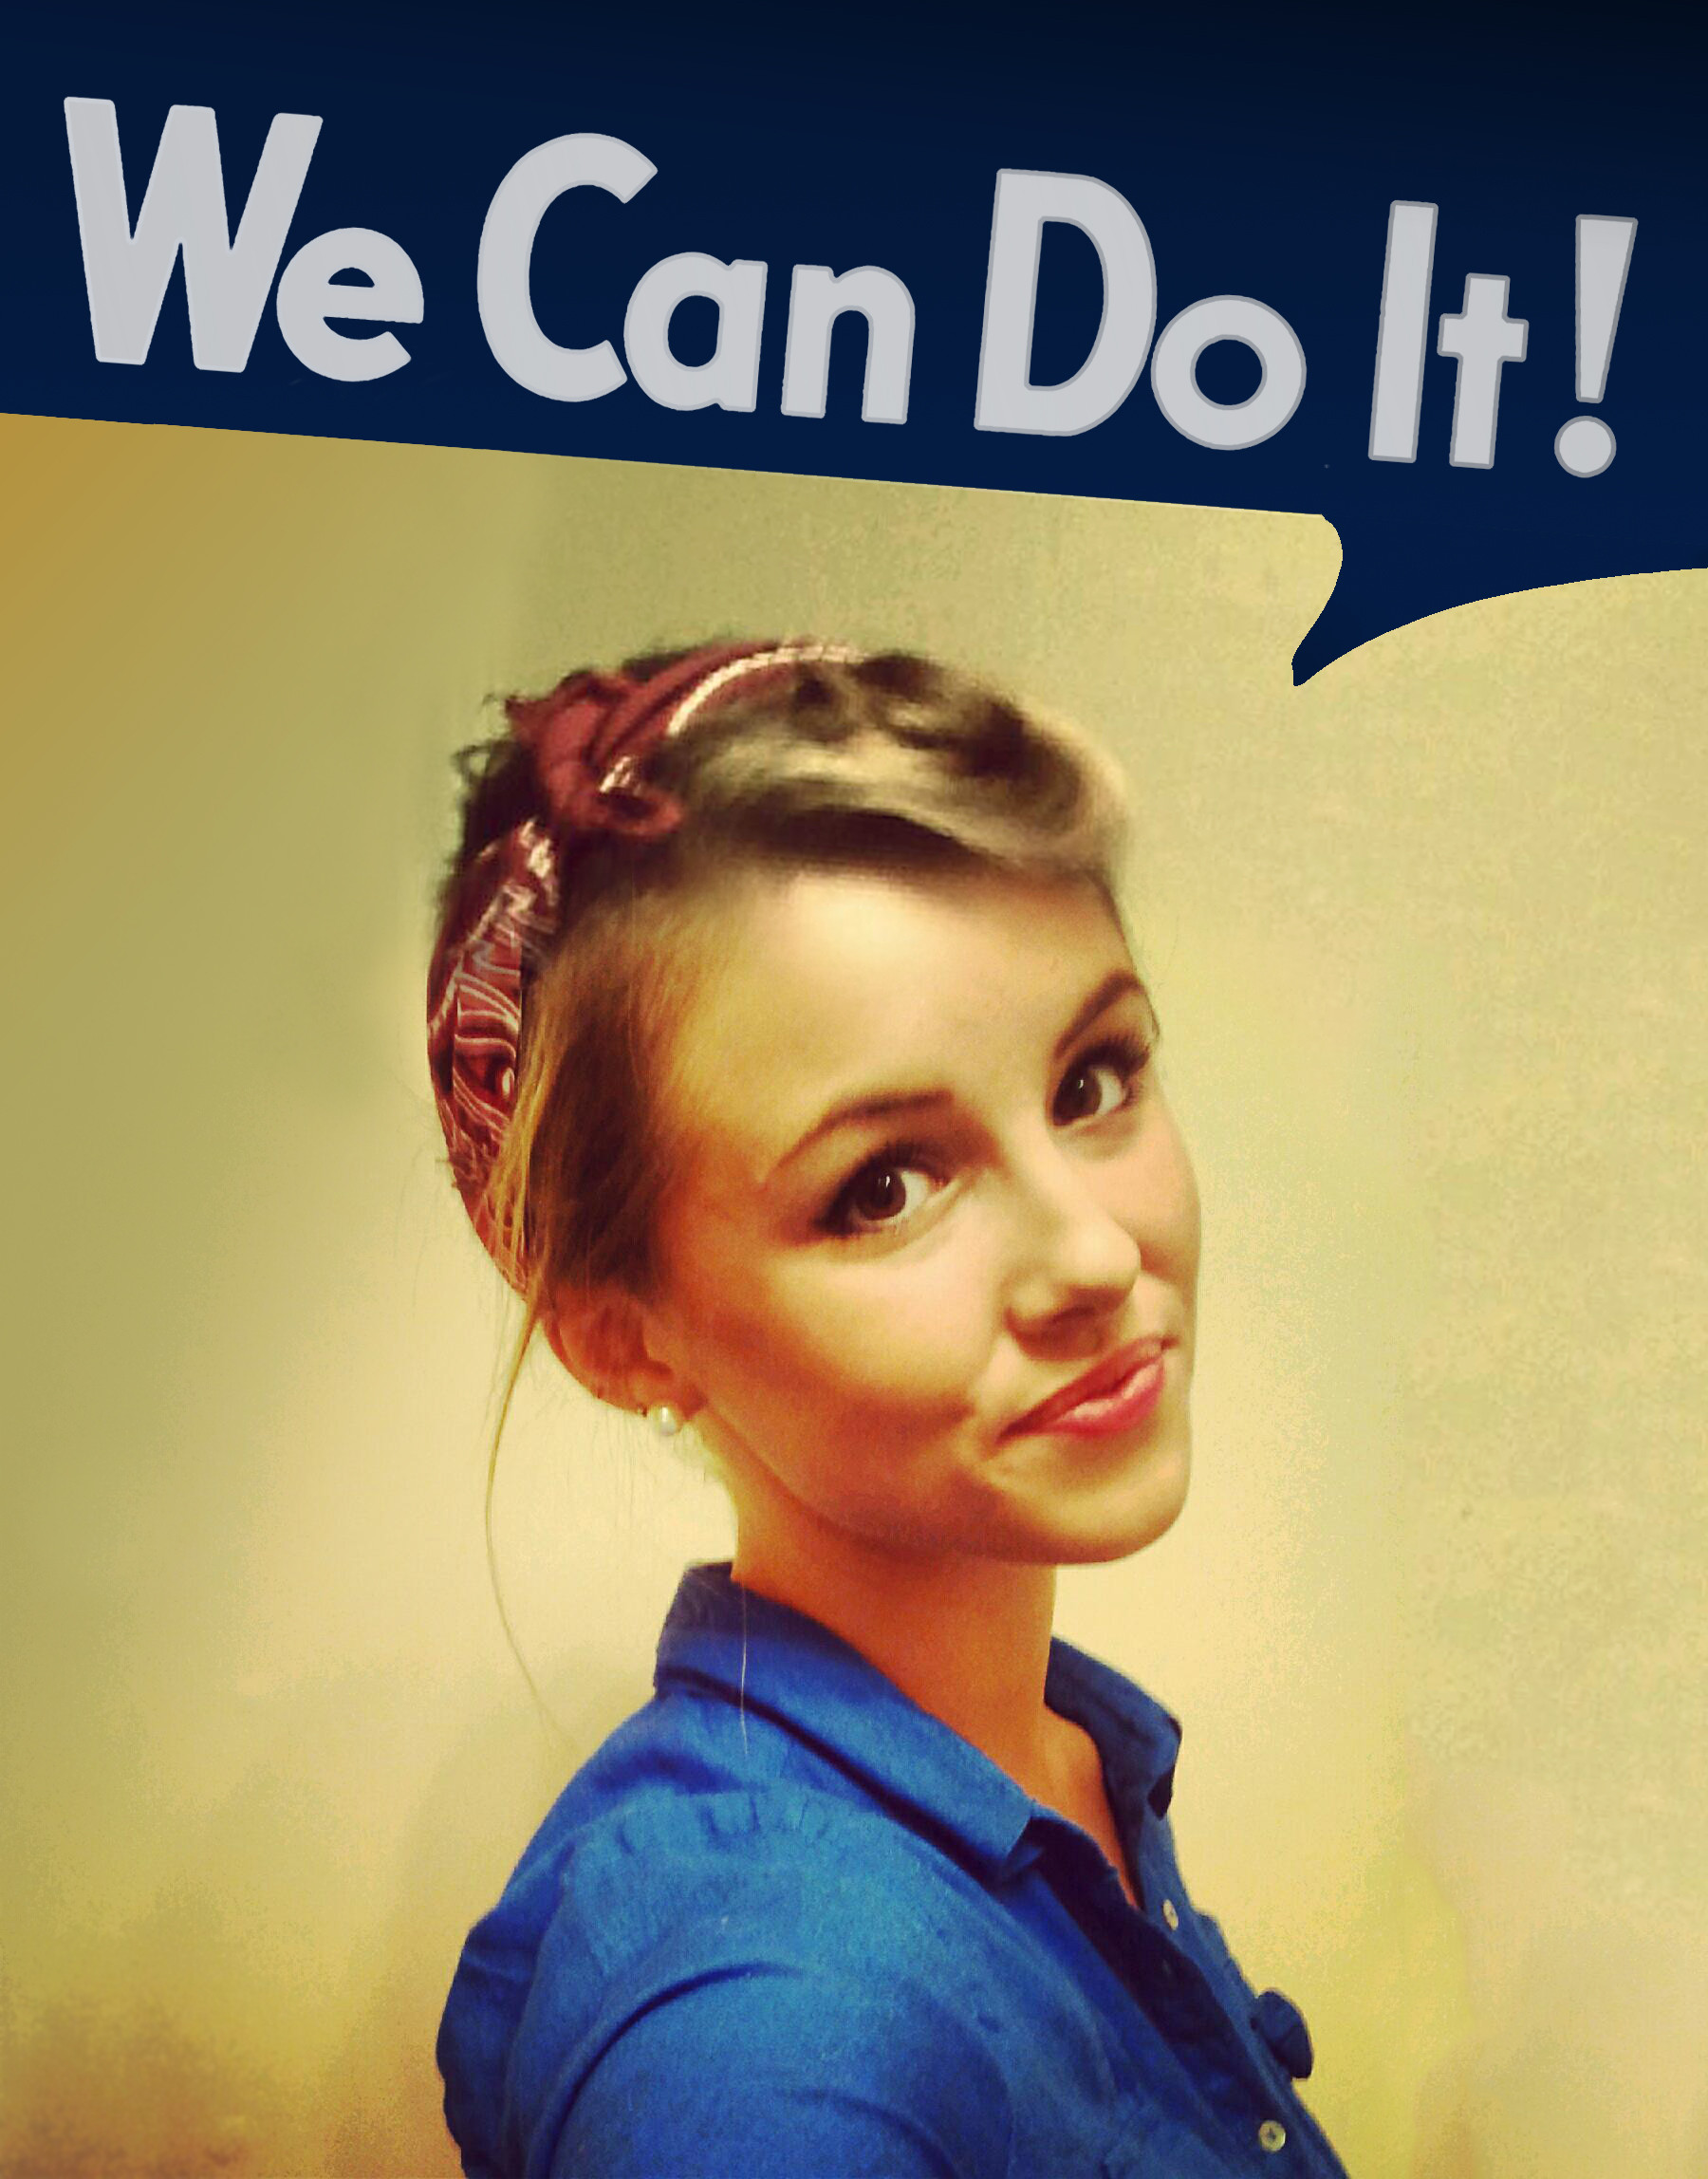 affiche-we-can-do-it-vrai